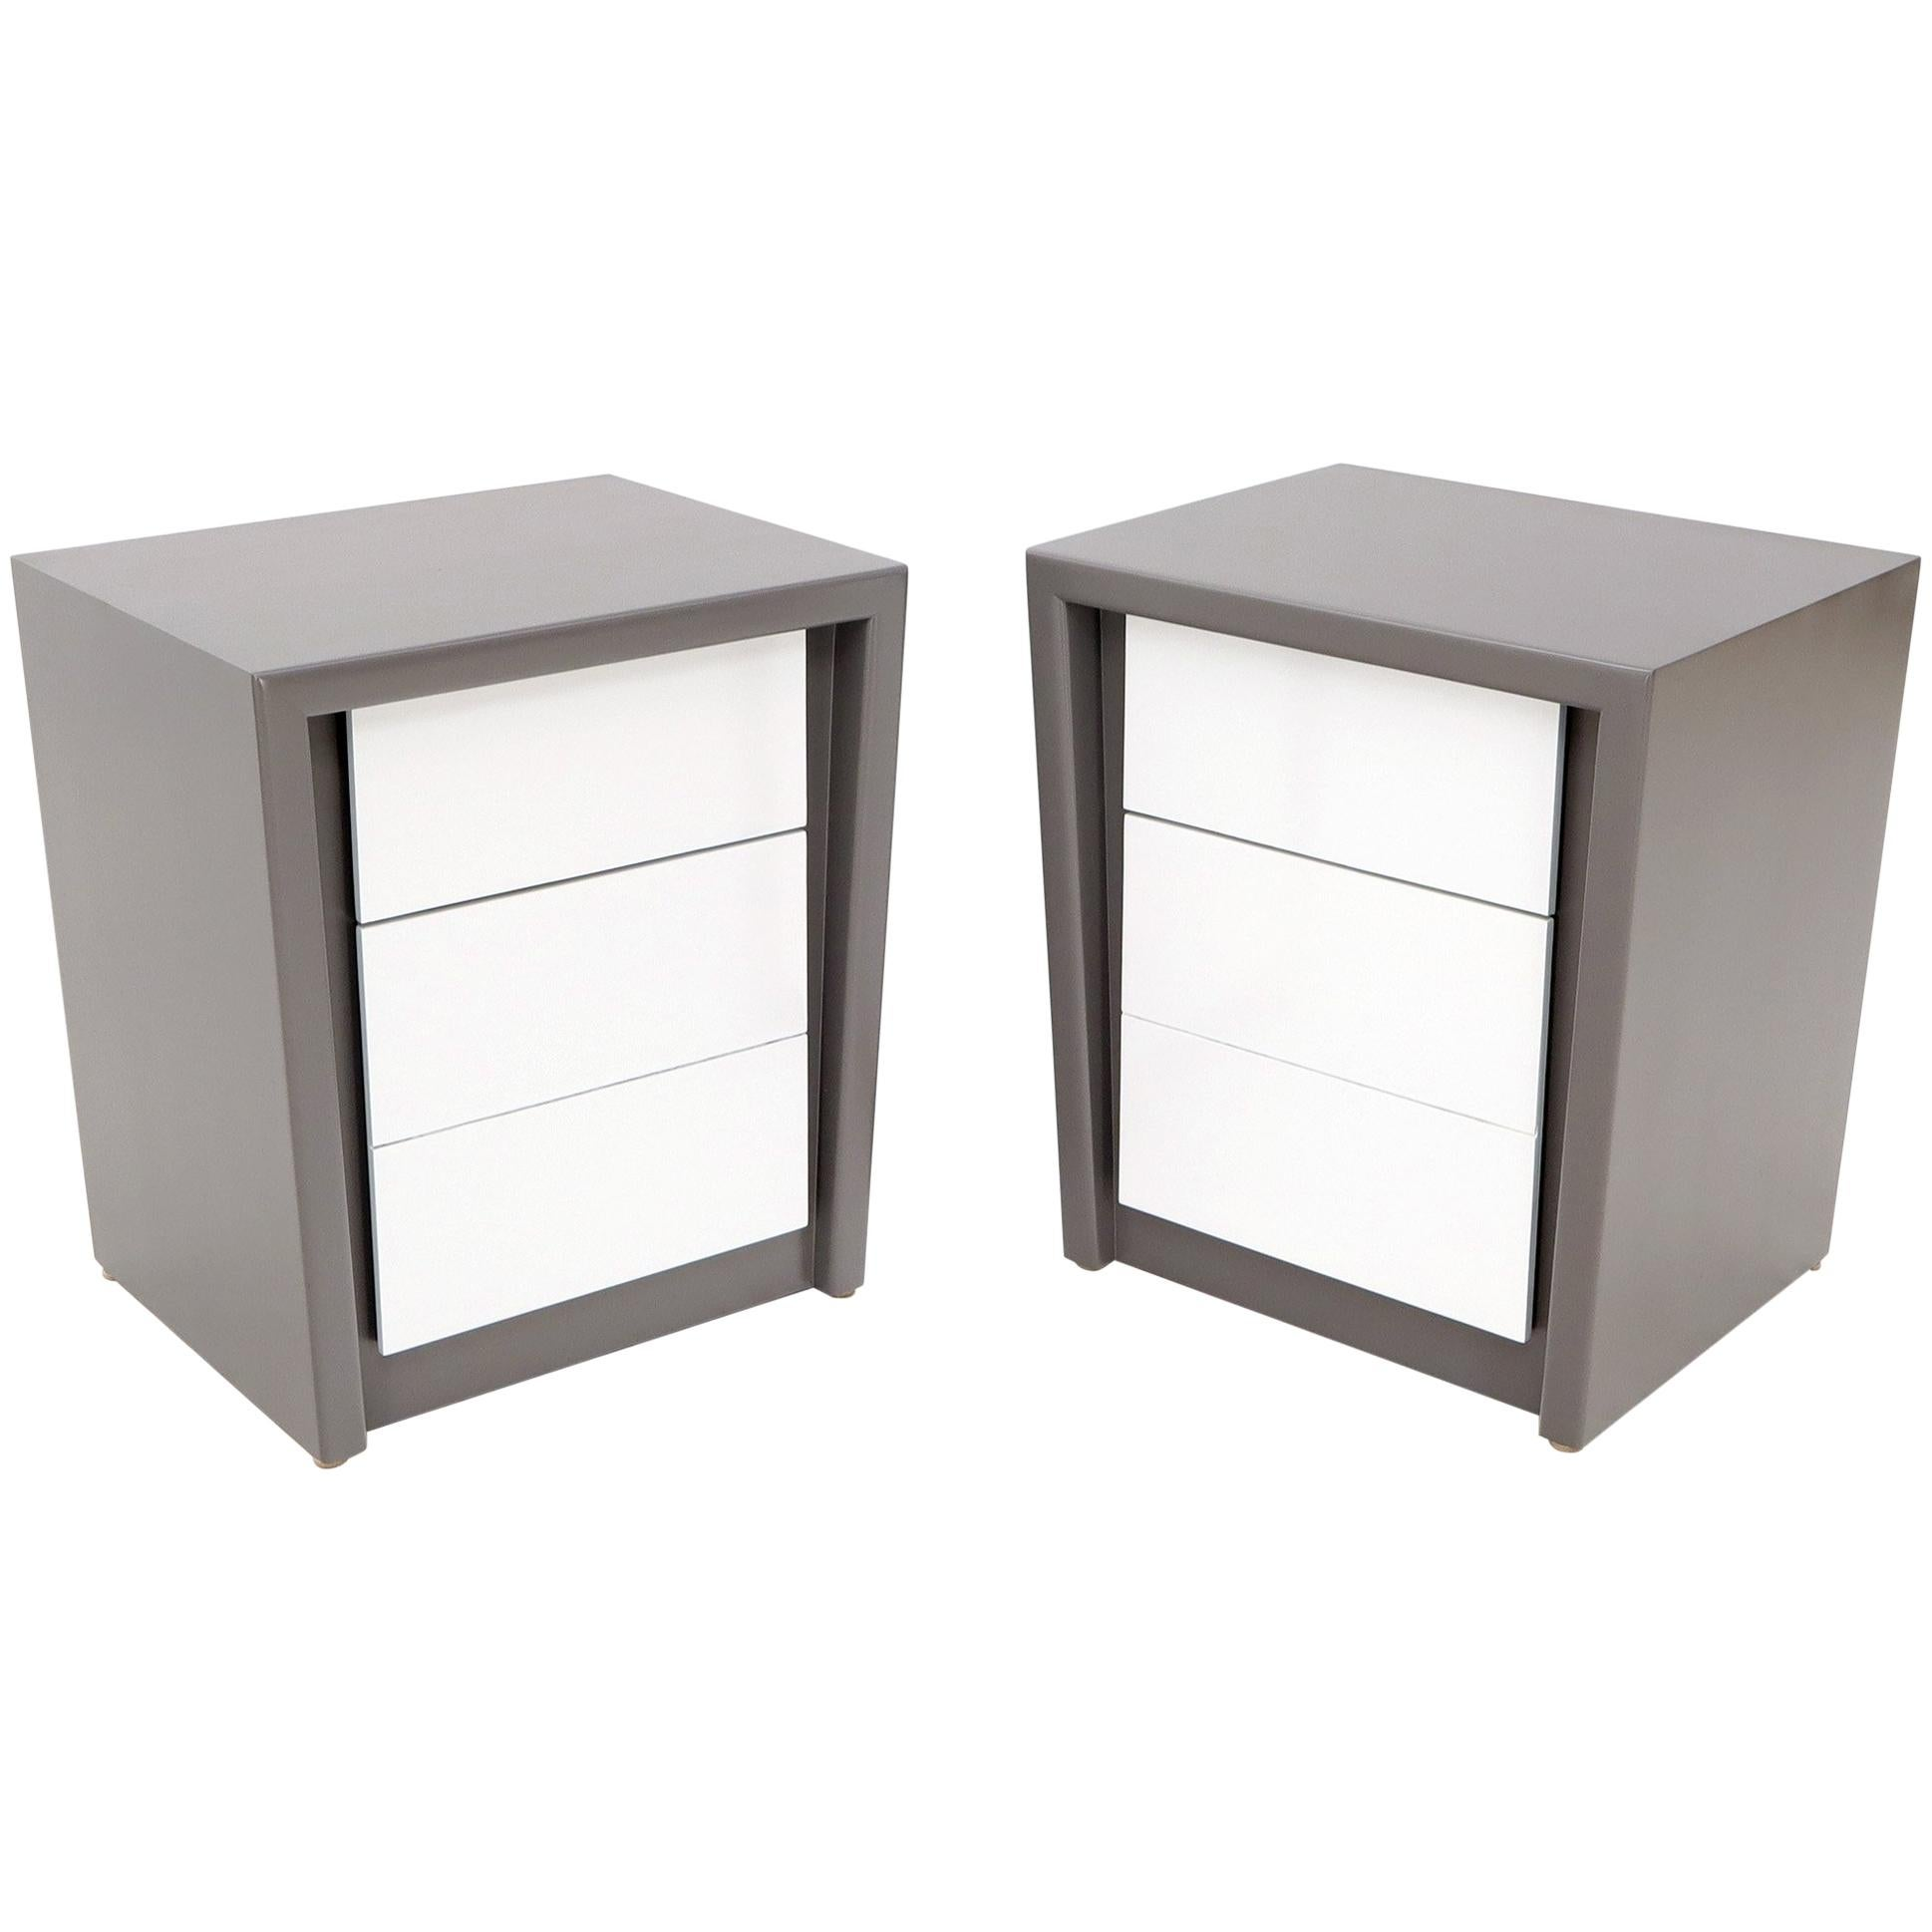 Pair of Tapered Shape Two Drawers Grey and White End Side Tables Nightstands